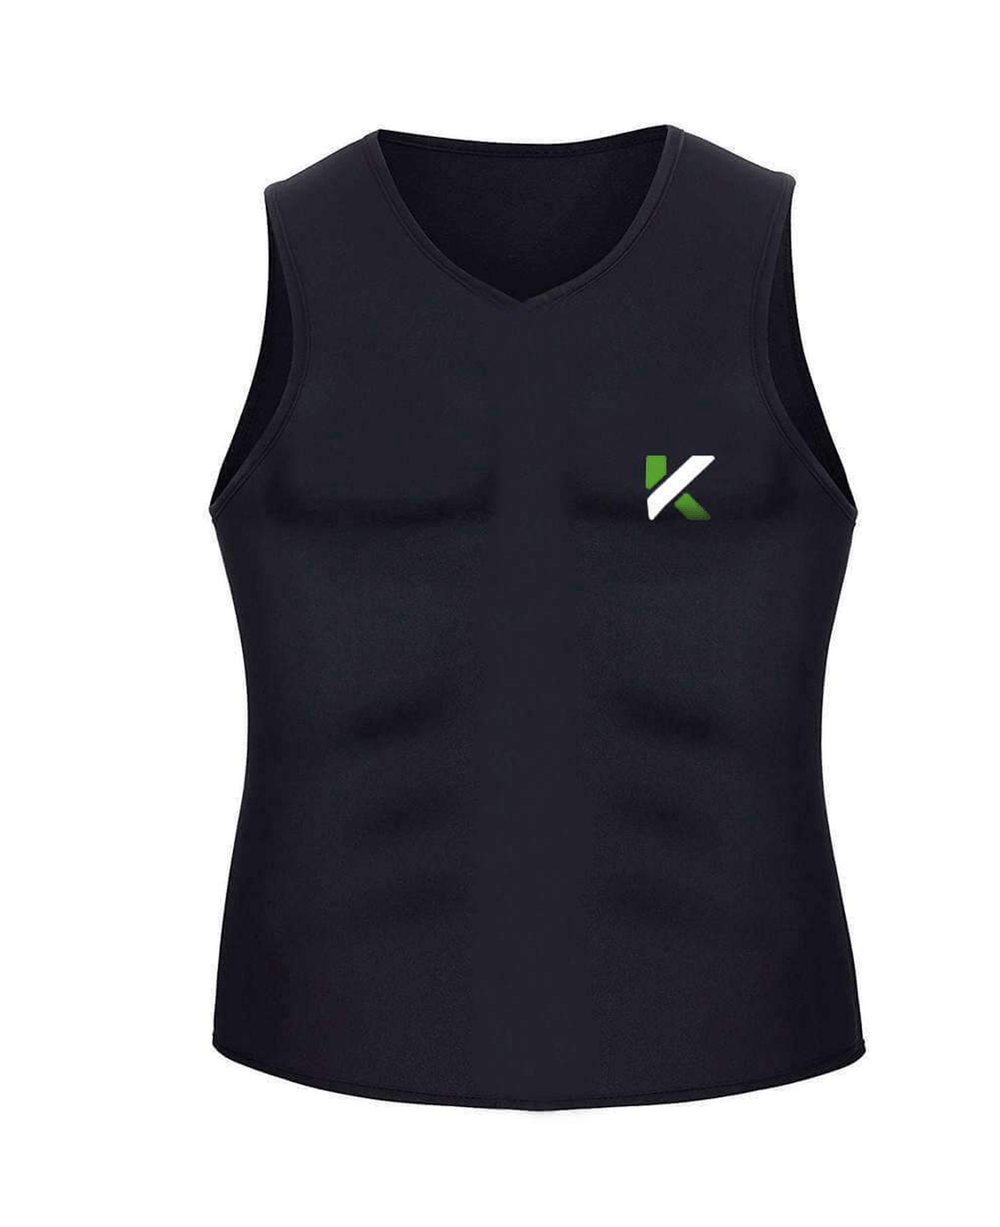 Kewlioo Sauna Vest Black, Medium Alt1